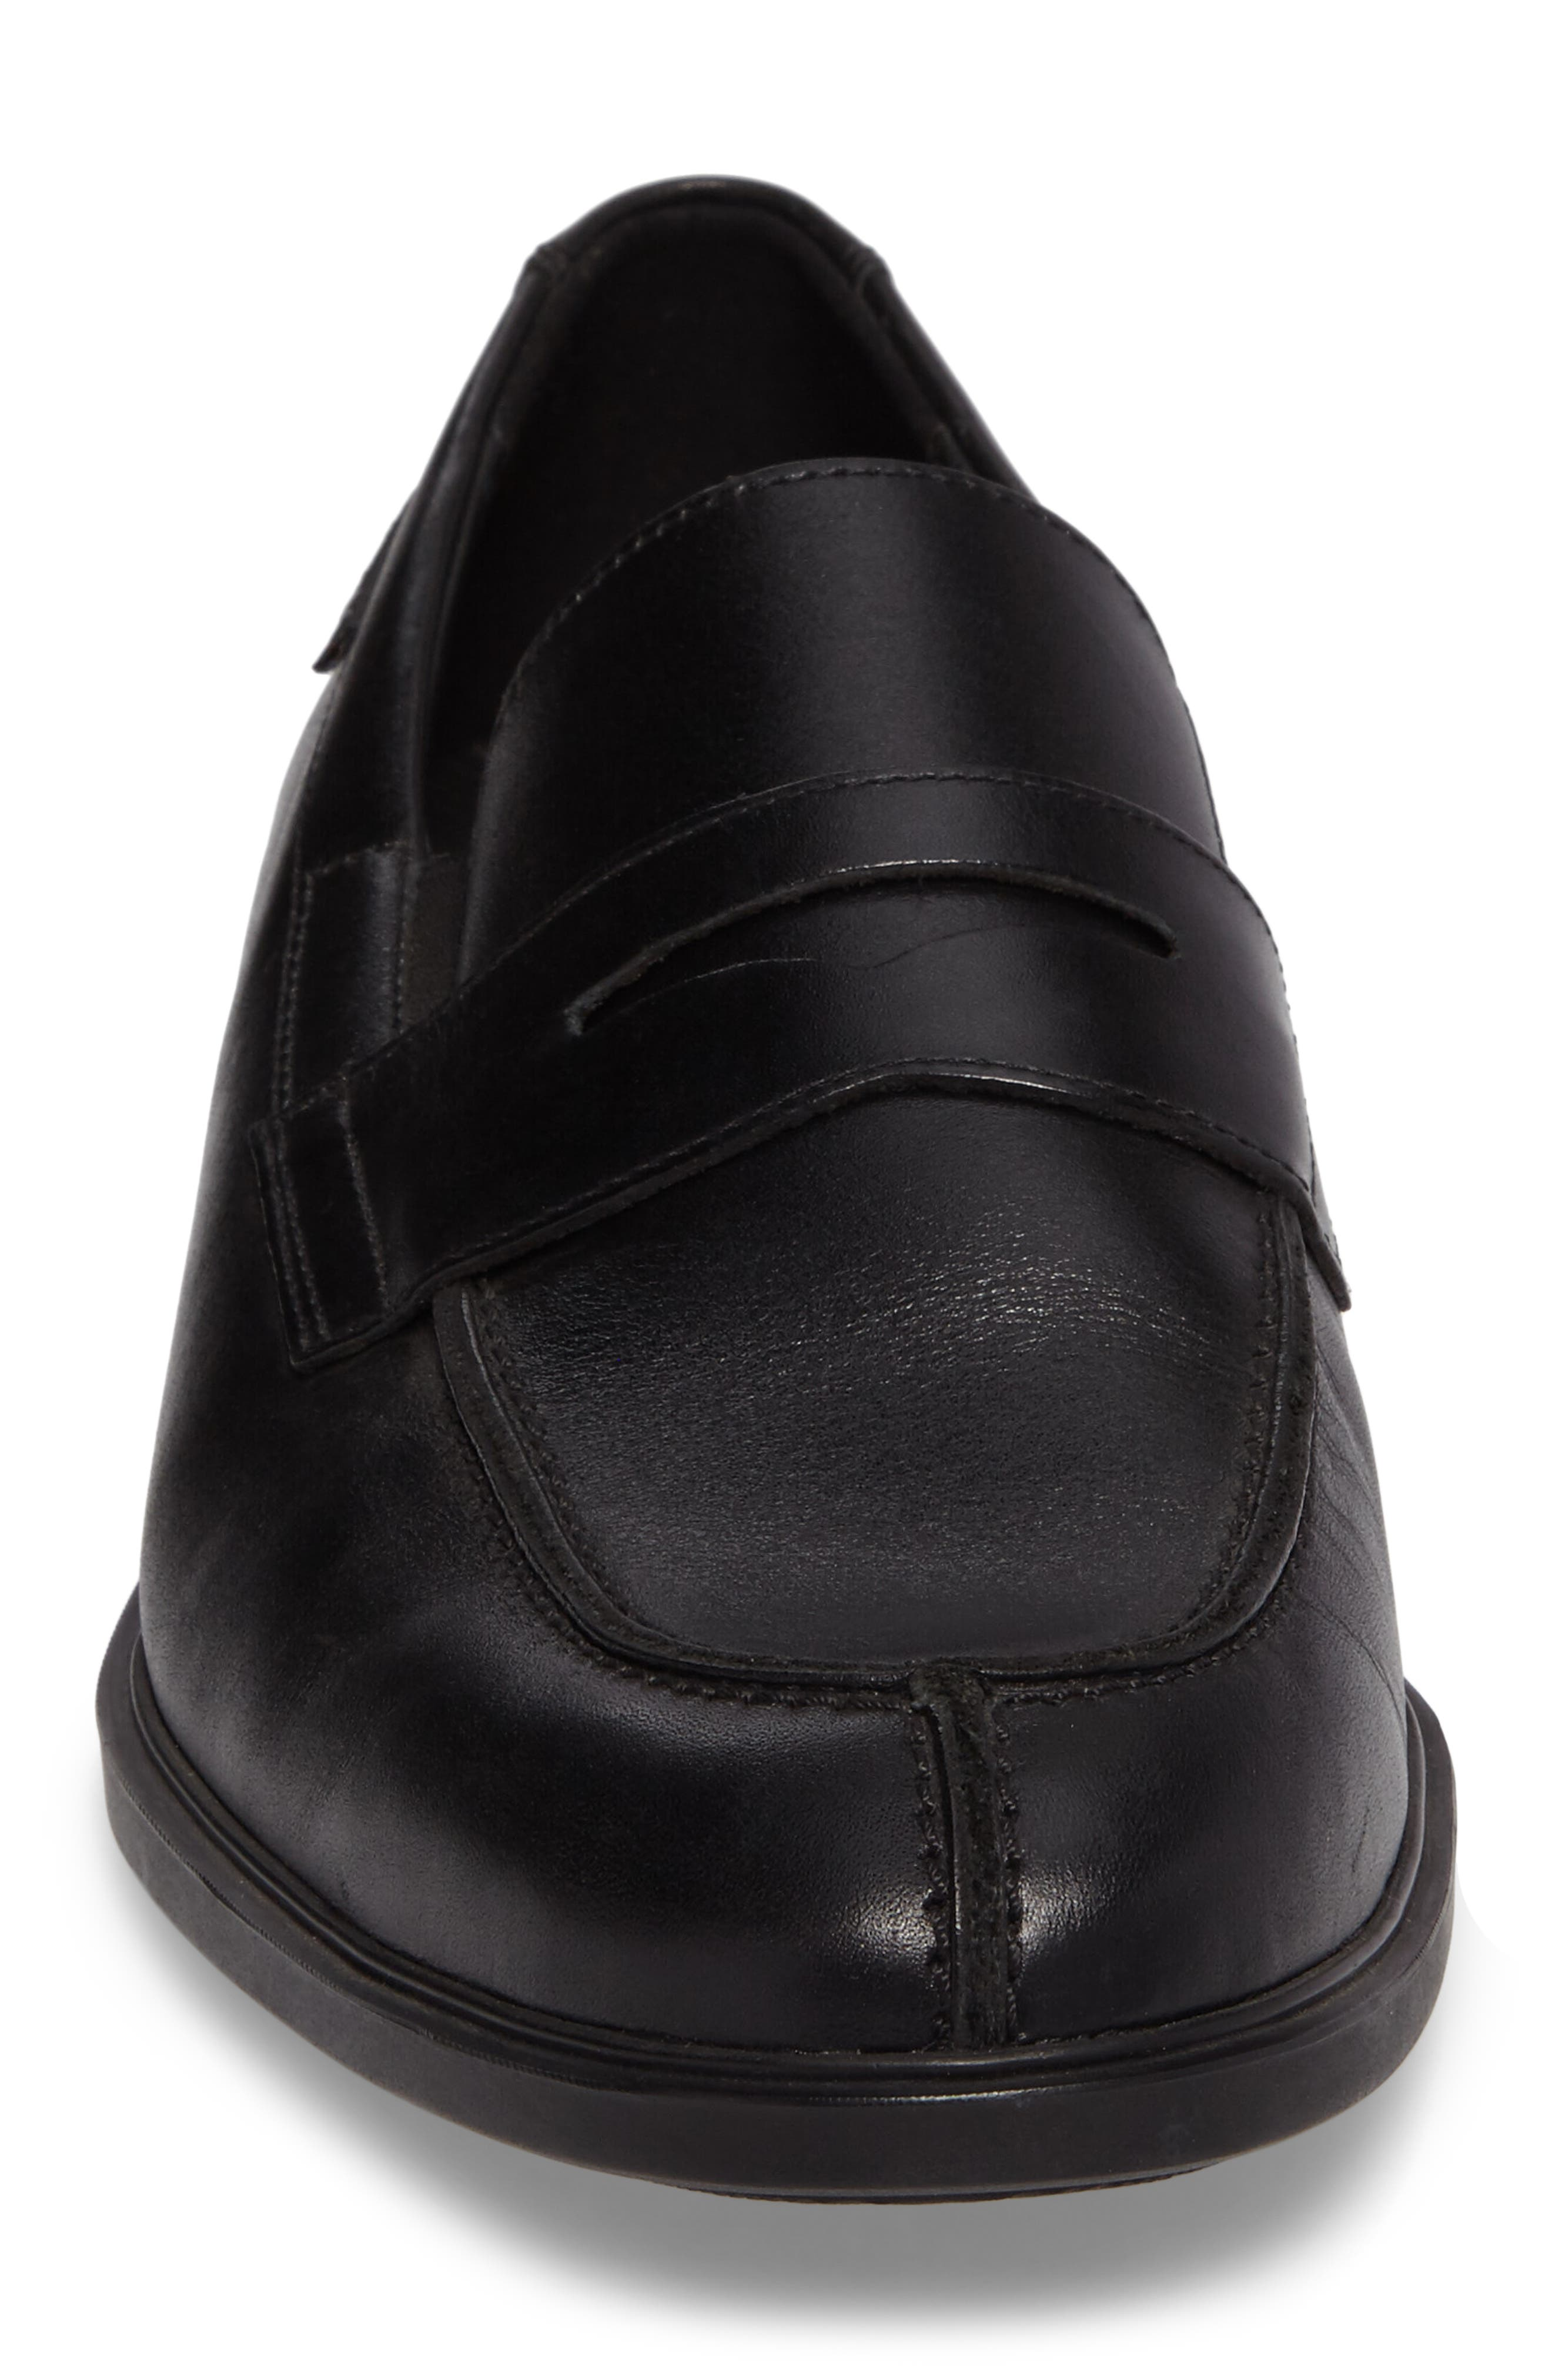 Fortino Loafer,                             Alternate thumbnail 5, color,                             001